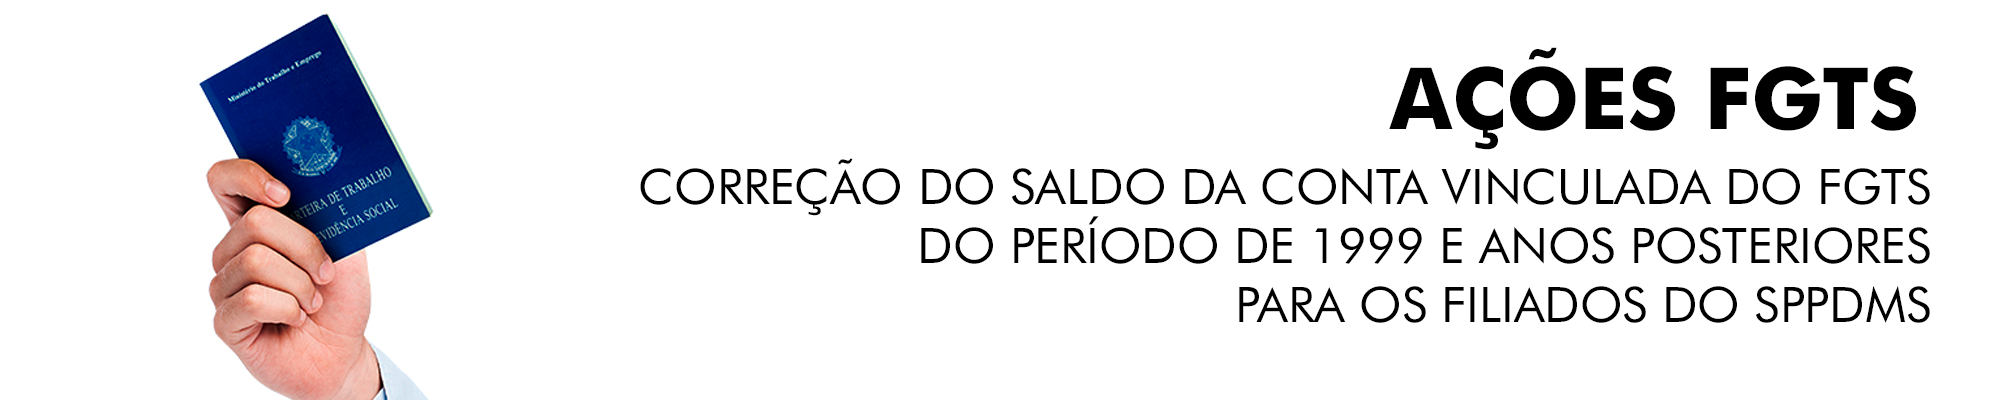 http://sppdms.org.br/wp-content/uploads/2019/05/banner-fgts-1.png